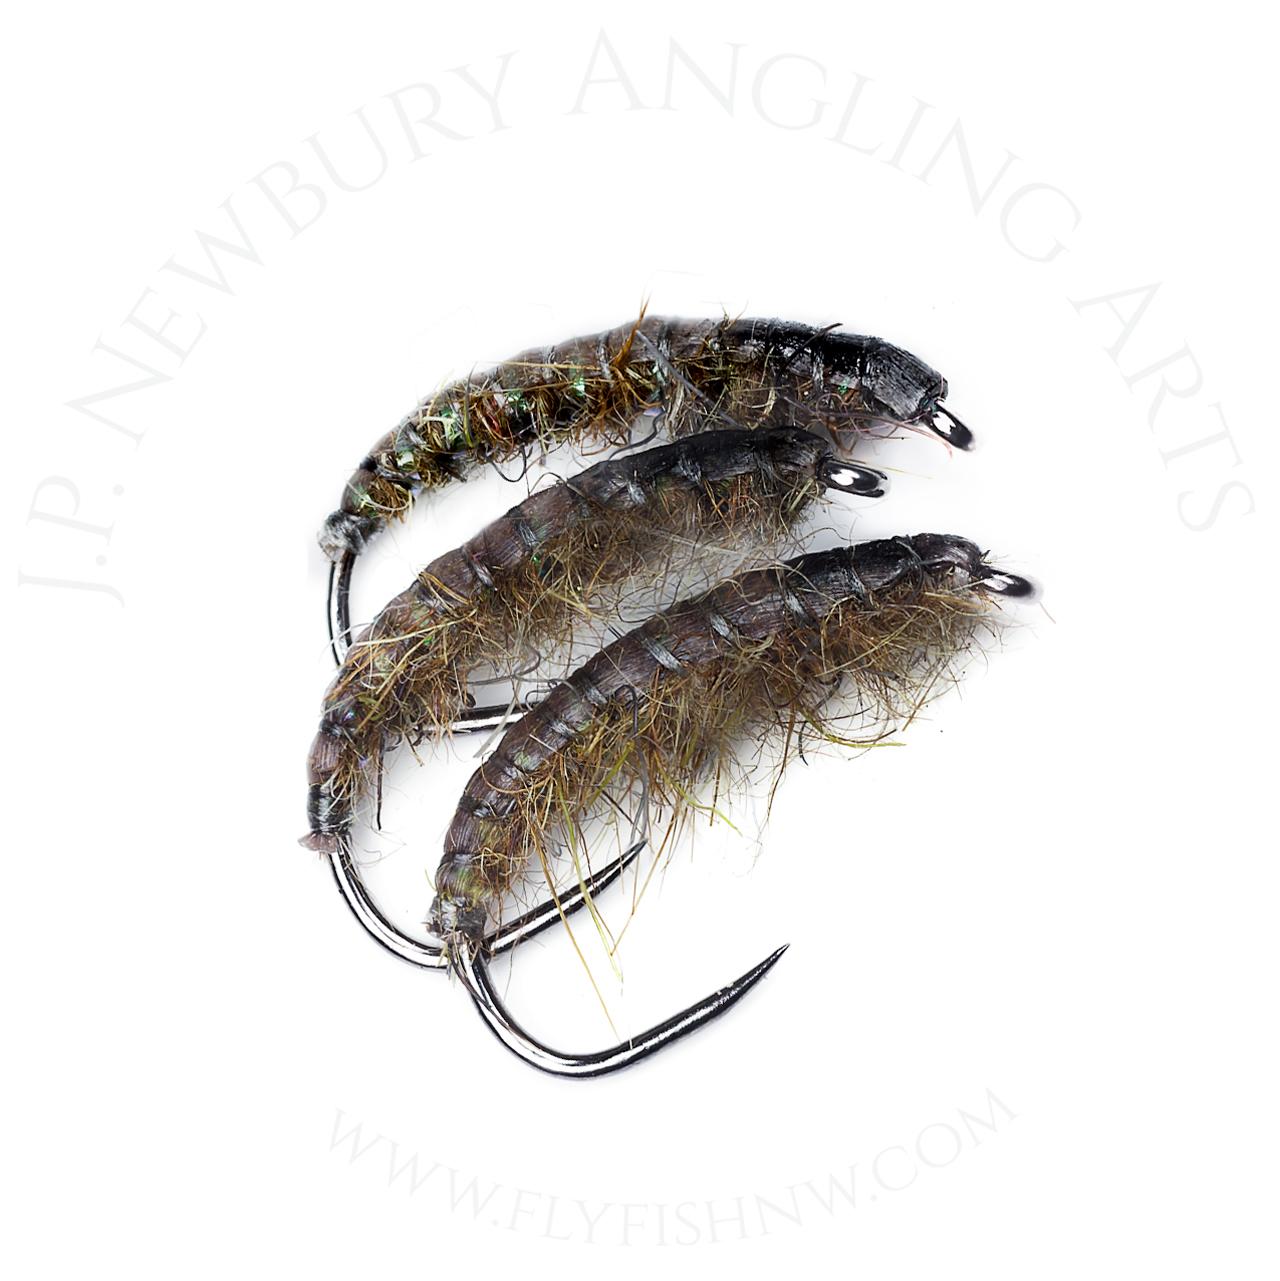 John P. Newbury Tied Snowshoe Rabbit Foot Czech Nymph